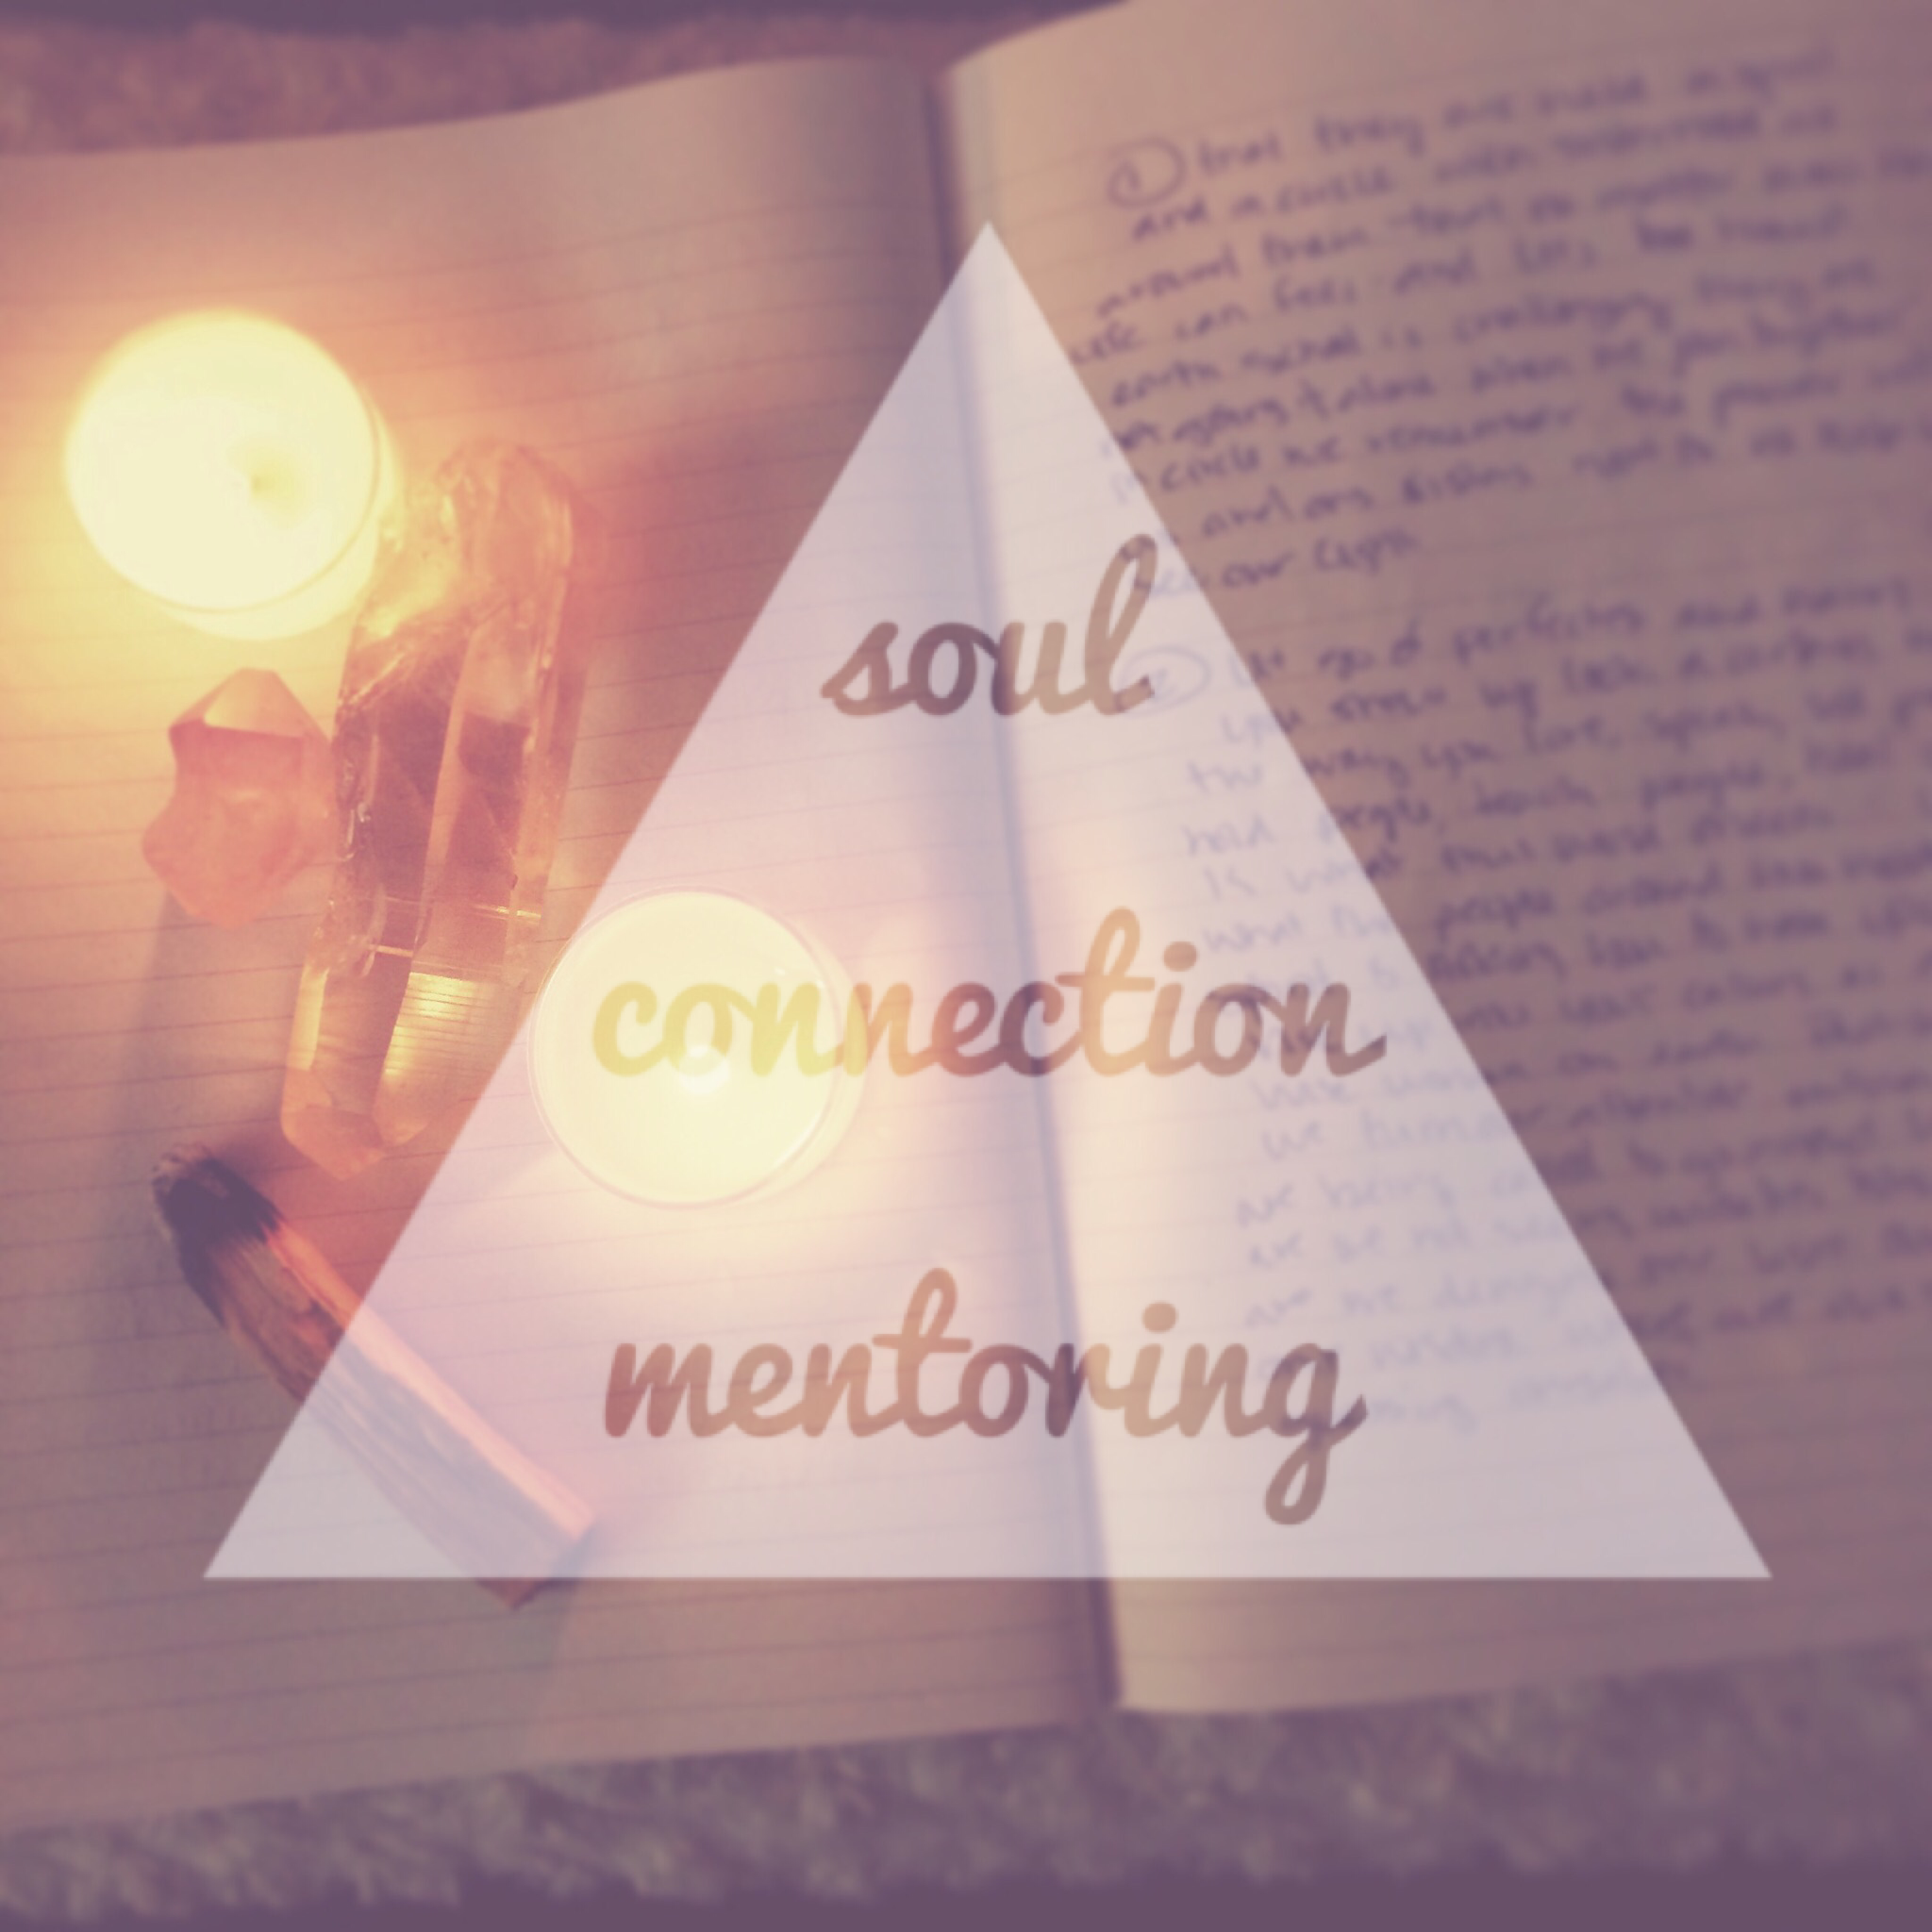 SOUL C  ONNECTION MENTORING    The deeper you go, the brighter you shine. The 4-month Soul Connection program is for women who are ready to go all in so that you rise up. We will use a sensitive calibration of energetic healing, spiritual tools, and intuitive wisdom to soothe your soul and set into motion the life you desire to live.